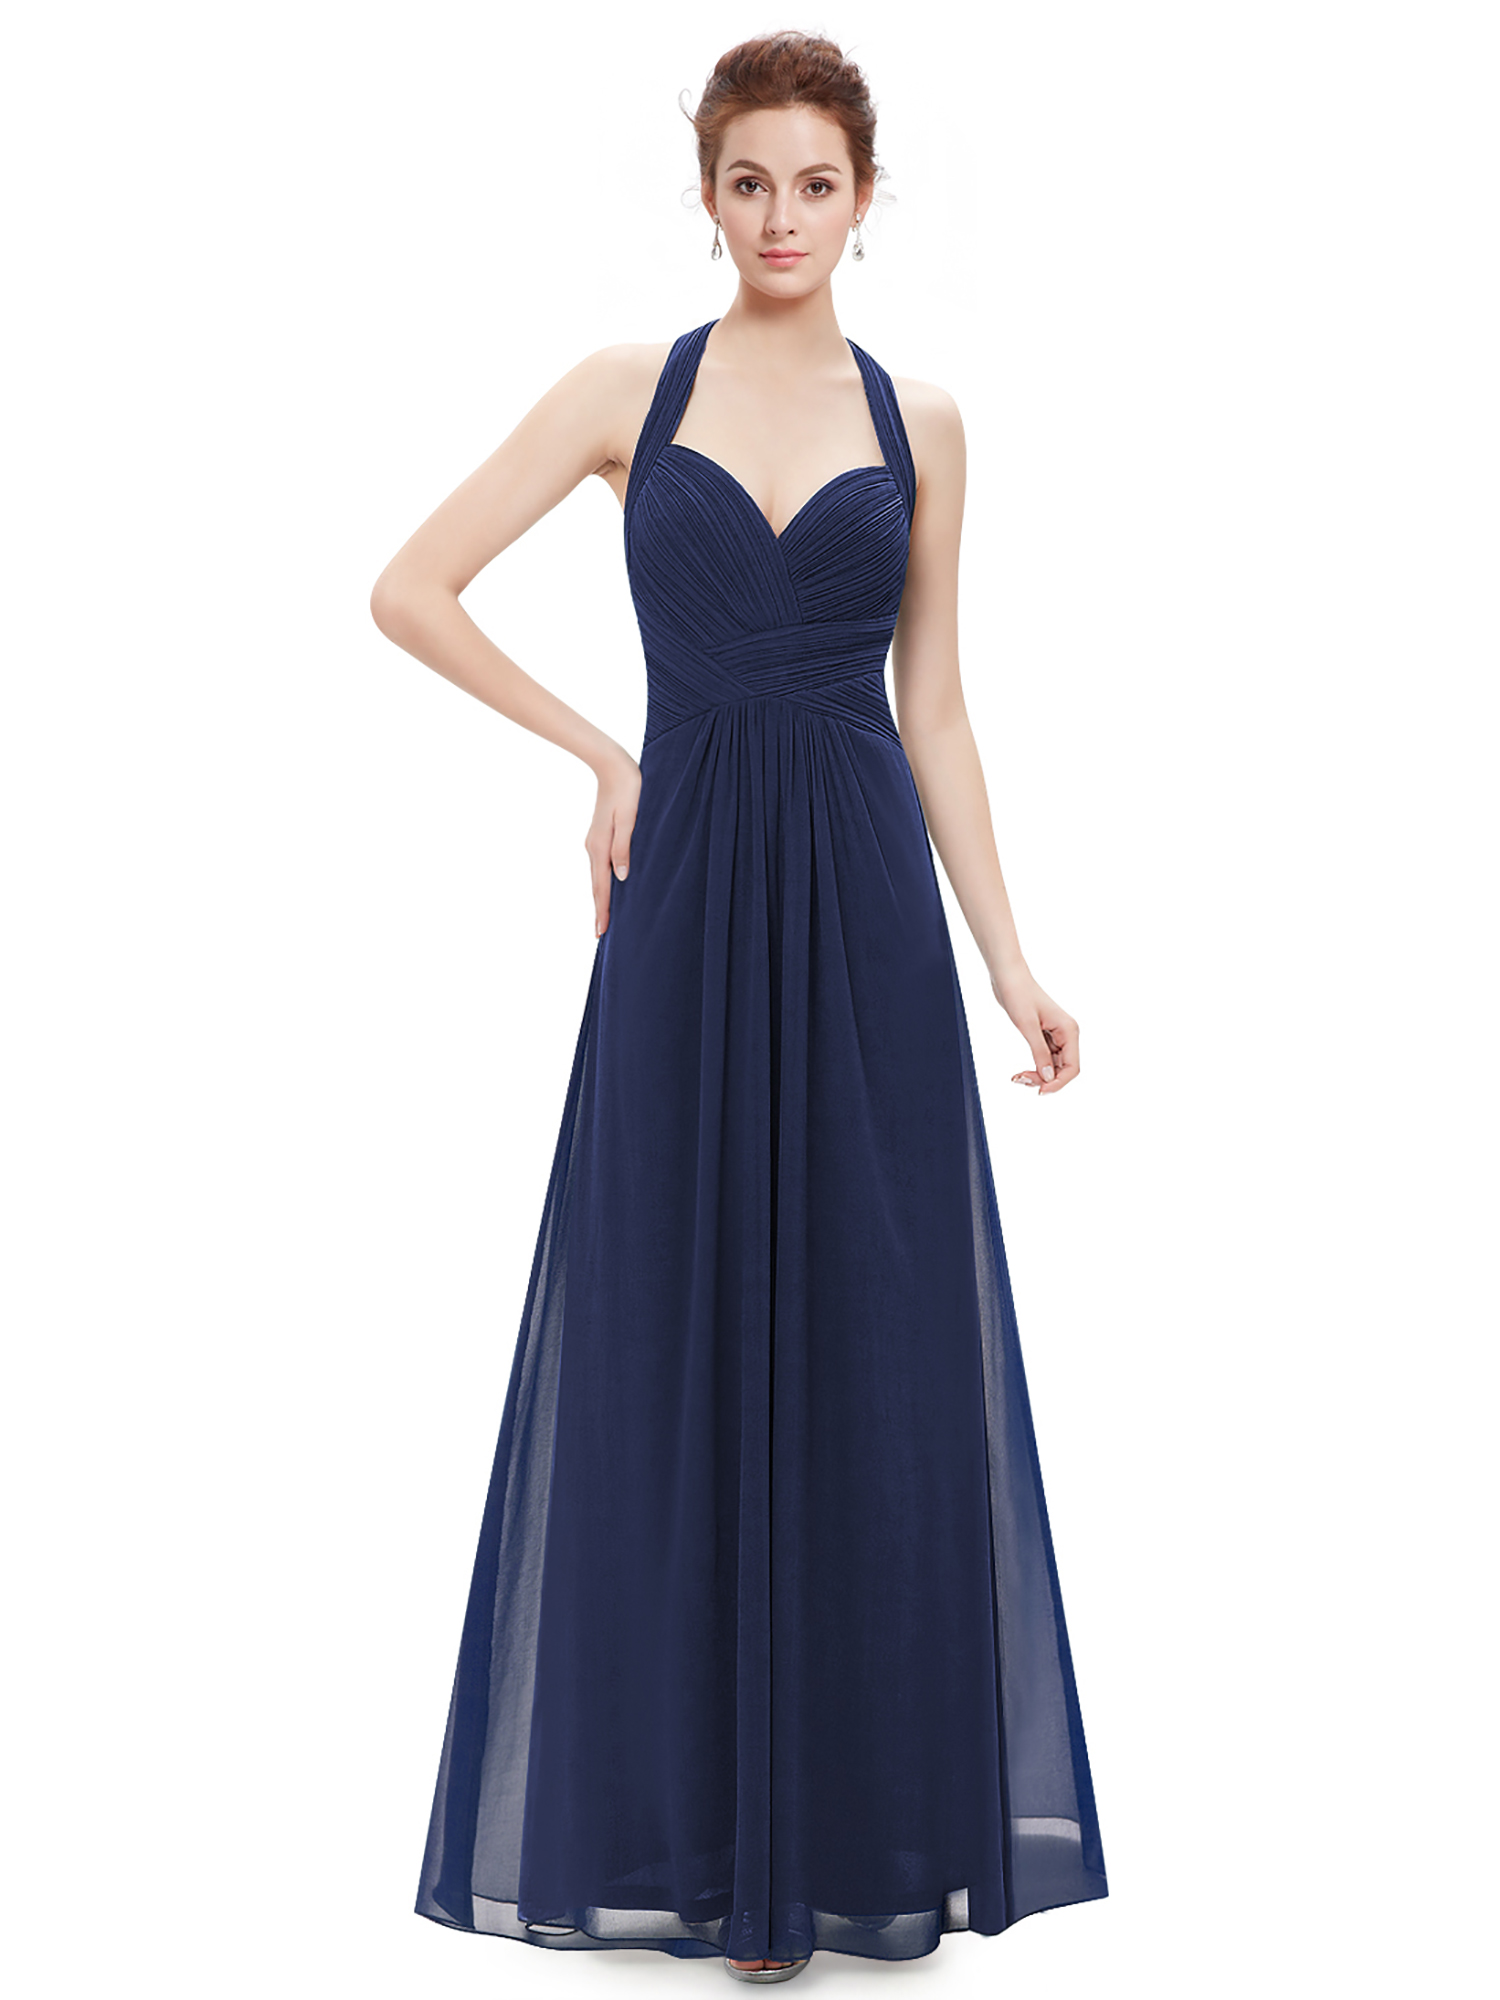 Women 39 S Maxi Halter Bridesmaid Dress Evening Wedding Prom